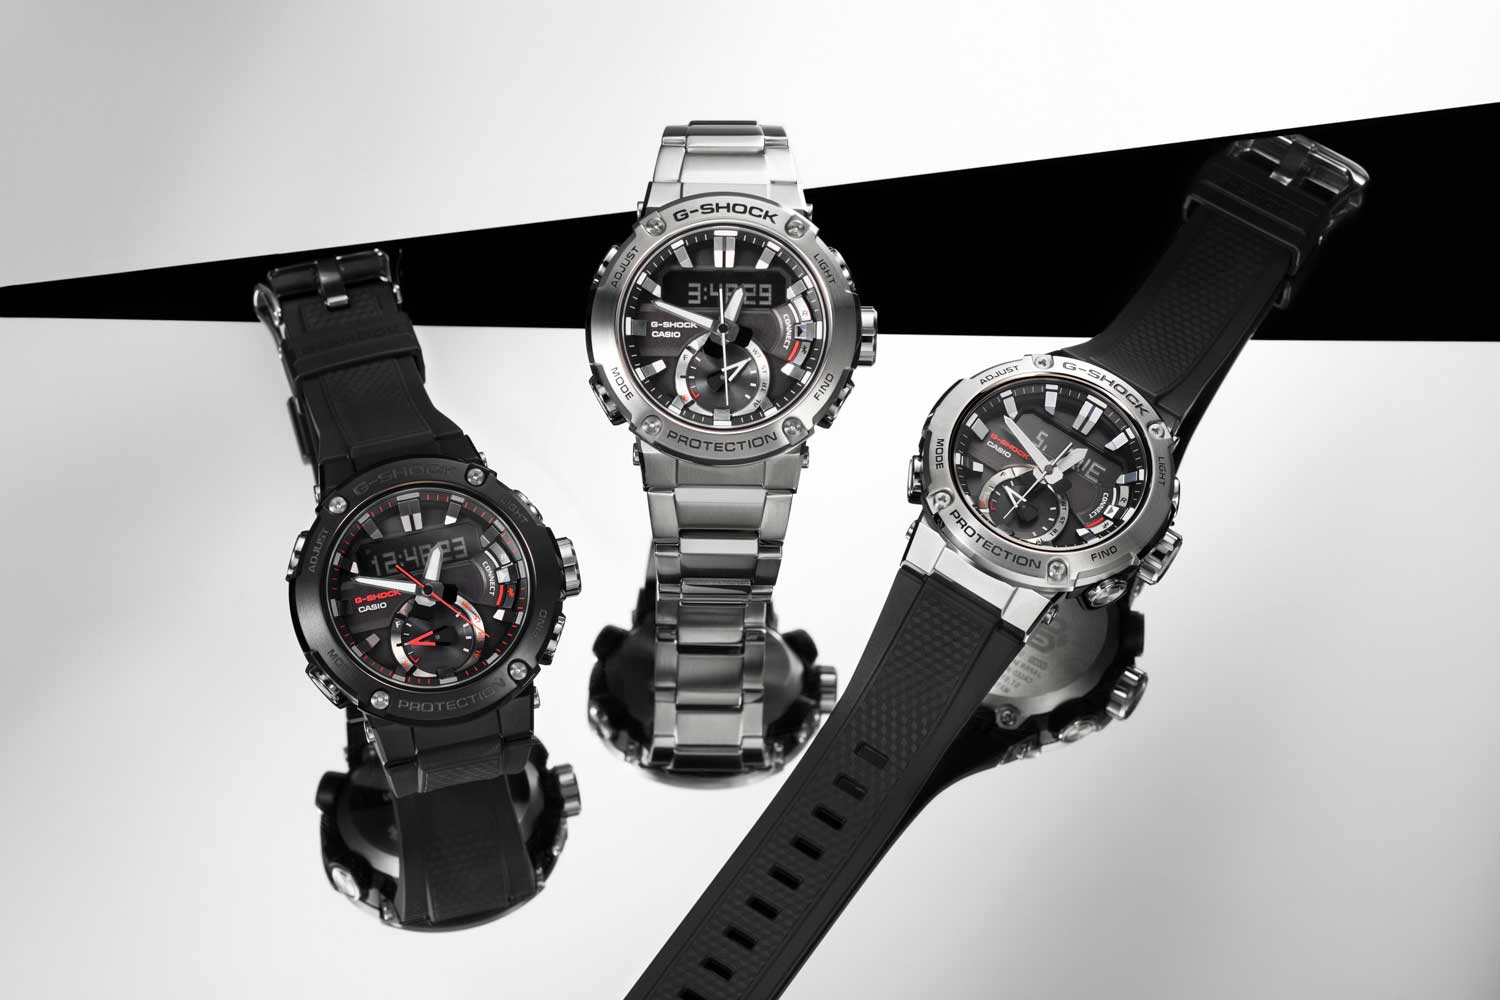 The Casio G-Steel Carbon Core Guard G-Steel BST-200 trio of watches (Image © Revolution)